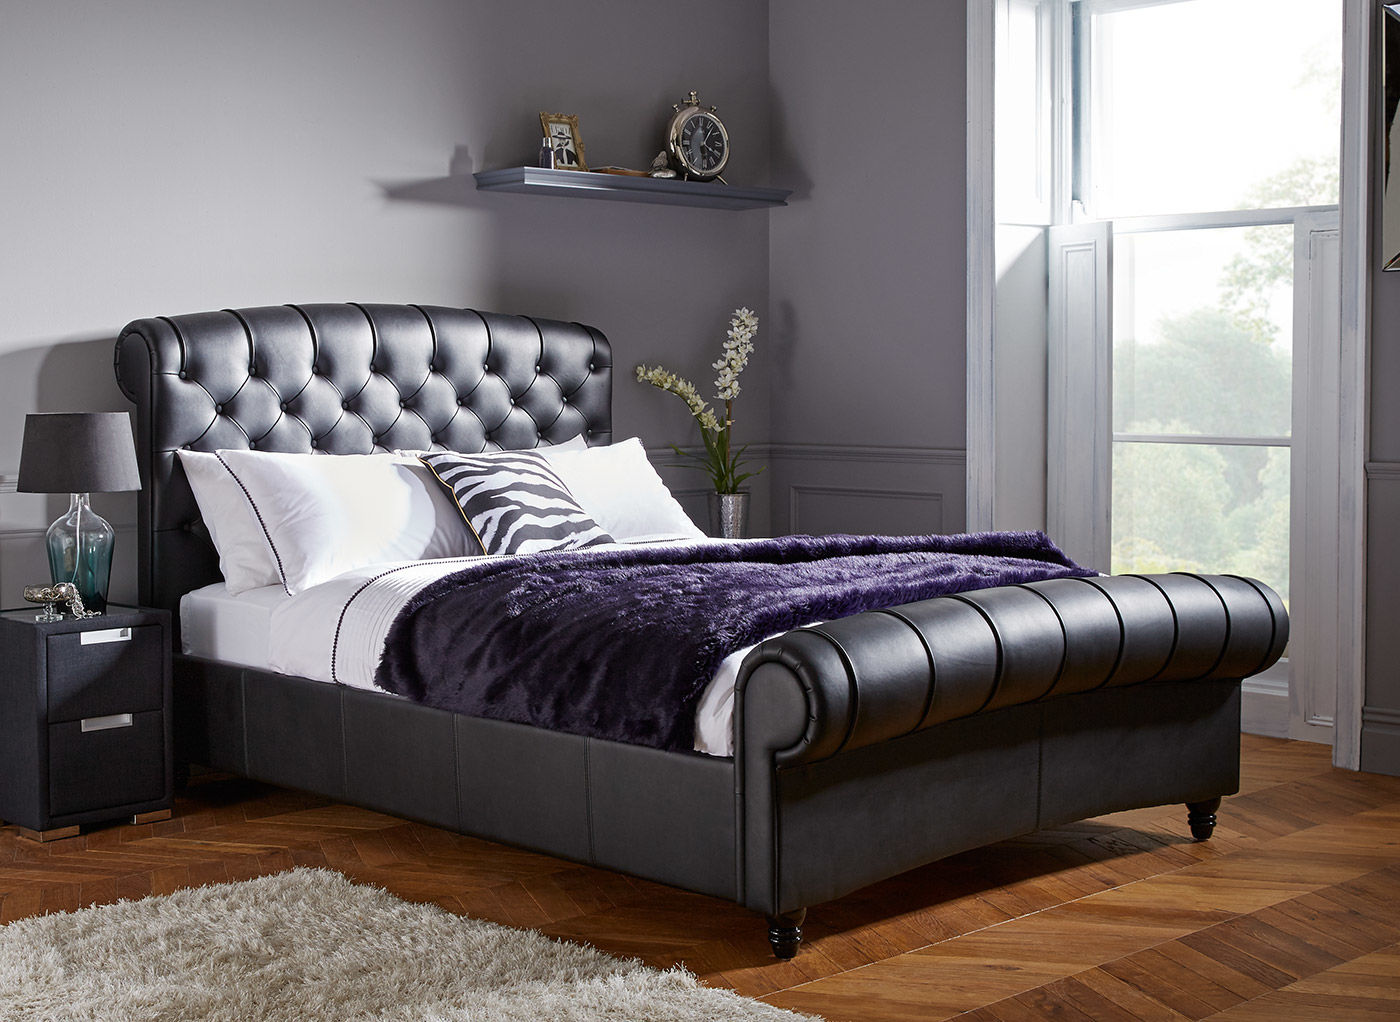 leather beds ellis black split leather bed frame | dreams KPLUXES